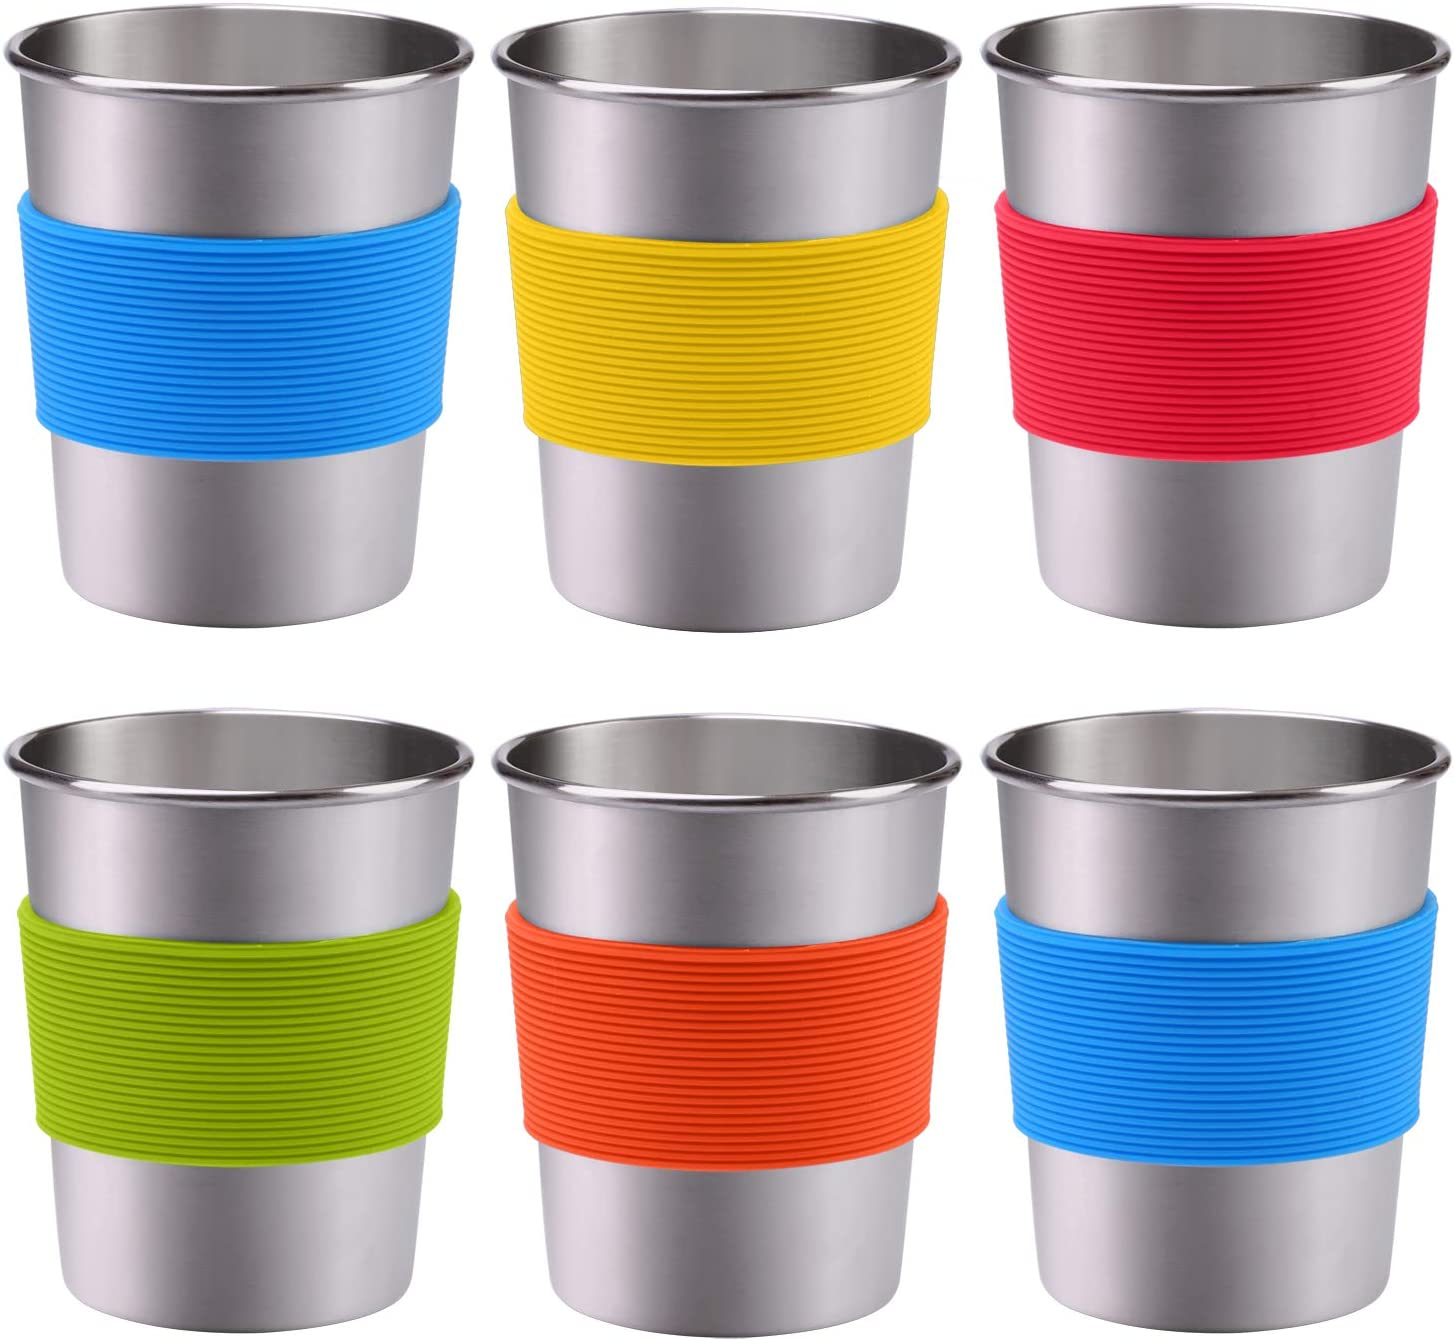 Ruisita 6 Pack 8 oz Stainless Steel Cups with Silicone Sleeve Metal Pint Tumbler Unbreakable Drinking Cups for Kids and Adults (6, 8 oz)